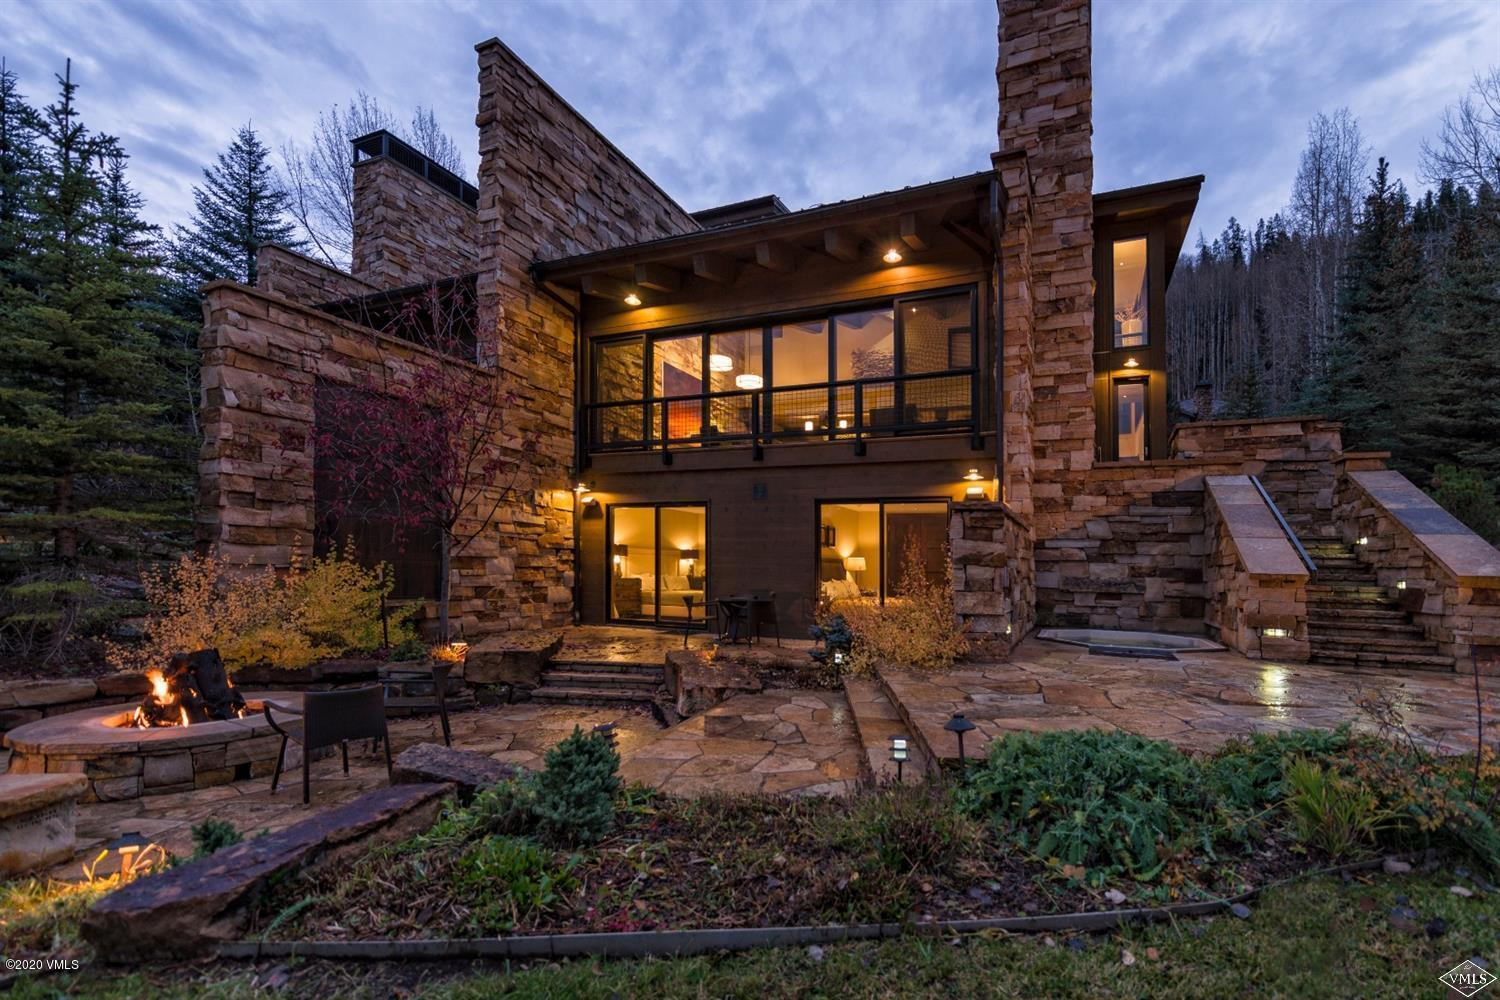 You will not find another home resting this close to Gore Creek on the coveted roads of Forest Road & Beaver Dam. After a glorious day in Vail, come home to this turnkey mountain modern home with 6 10' Weiland doors that open to your private creekside patio. Views of Bald Mountain, and the serene sound of the flowing creek, creates an unbeatable and picturesque mountain ambiance. This beautiful home will exceed your every expectation no matter the season. This convenient and coveted location on Forest Road places you steps away from Born Free ski run, Vail Village, Lionshead Village for shopping, dining, and entertainment.Unbranded Website:http://www.745BForestRoad.com/?mls